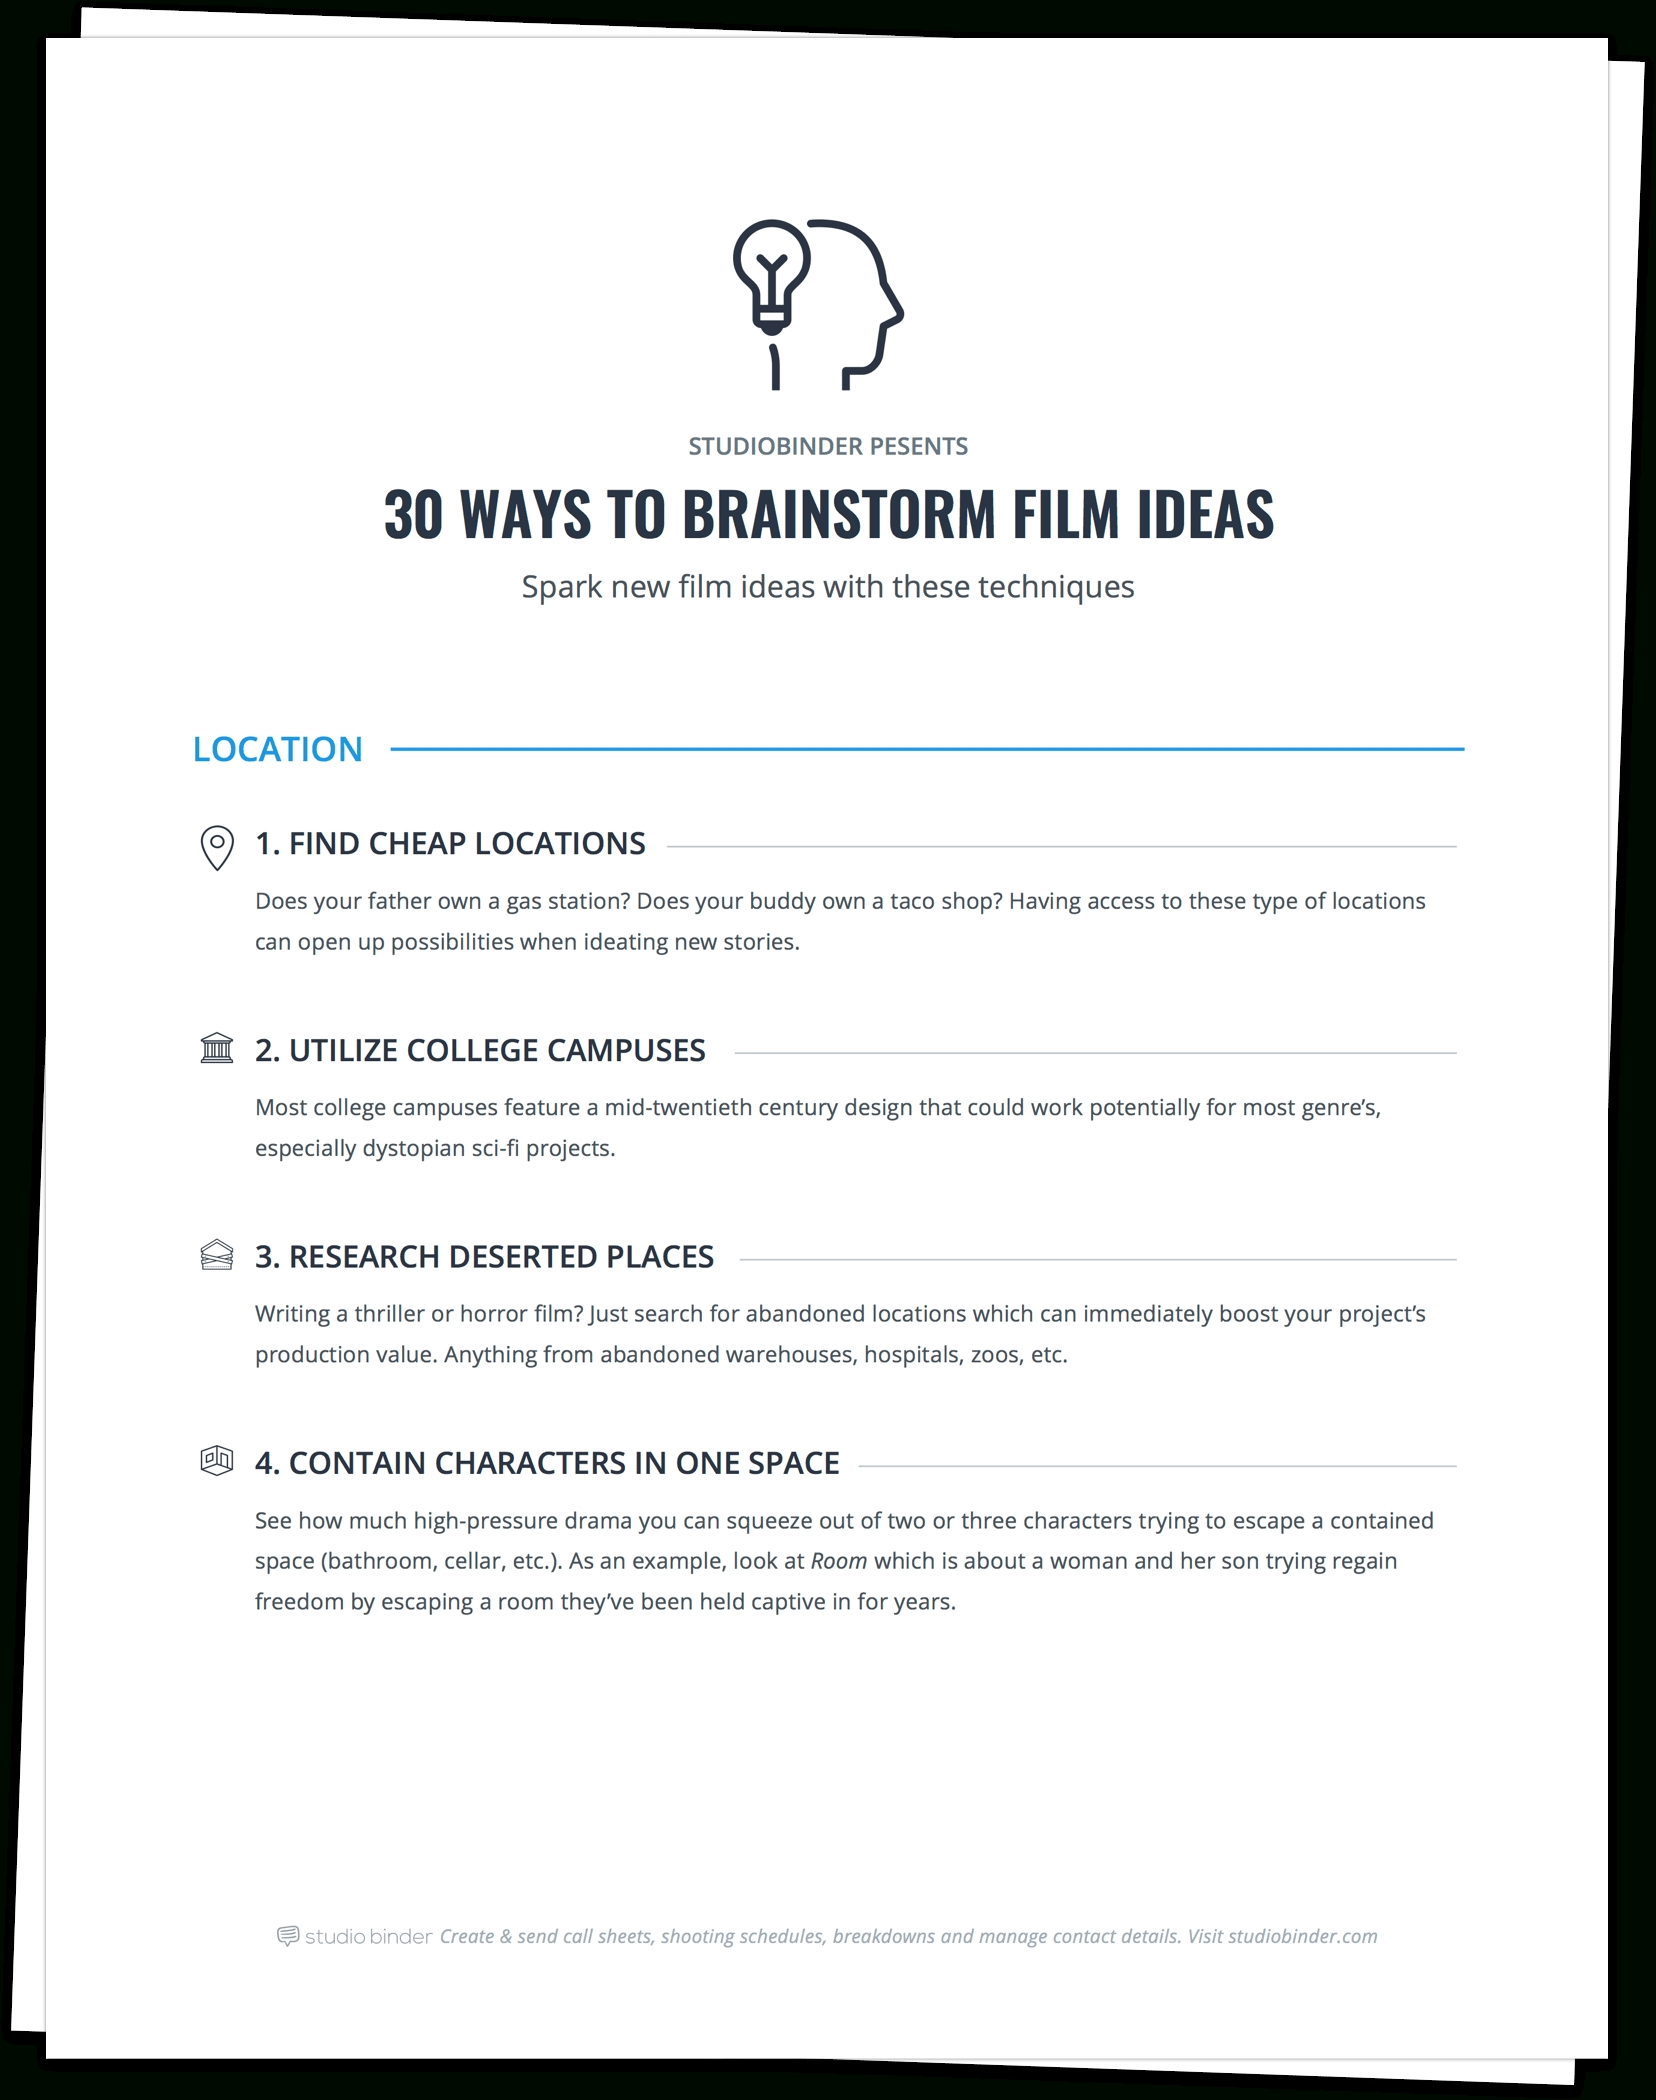 10 Elegant Ideas For A Short Film 30 ways to brainstorm short film ideas you can actually produce 2020